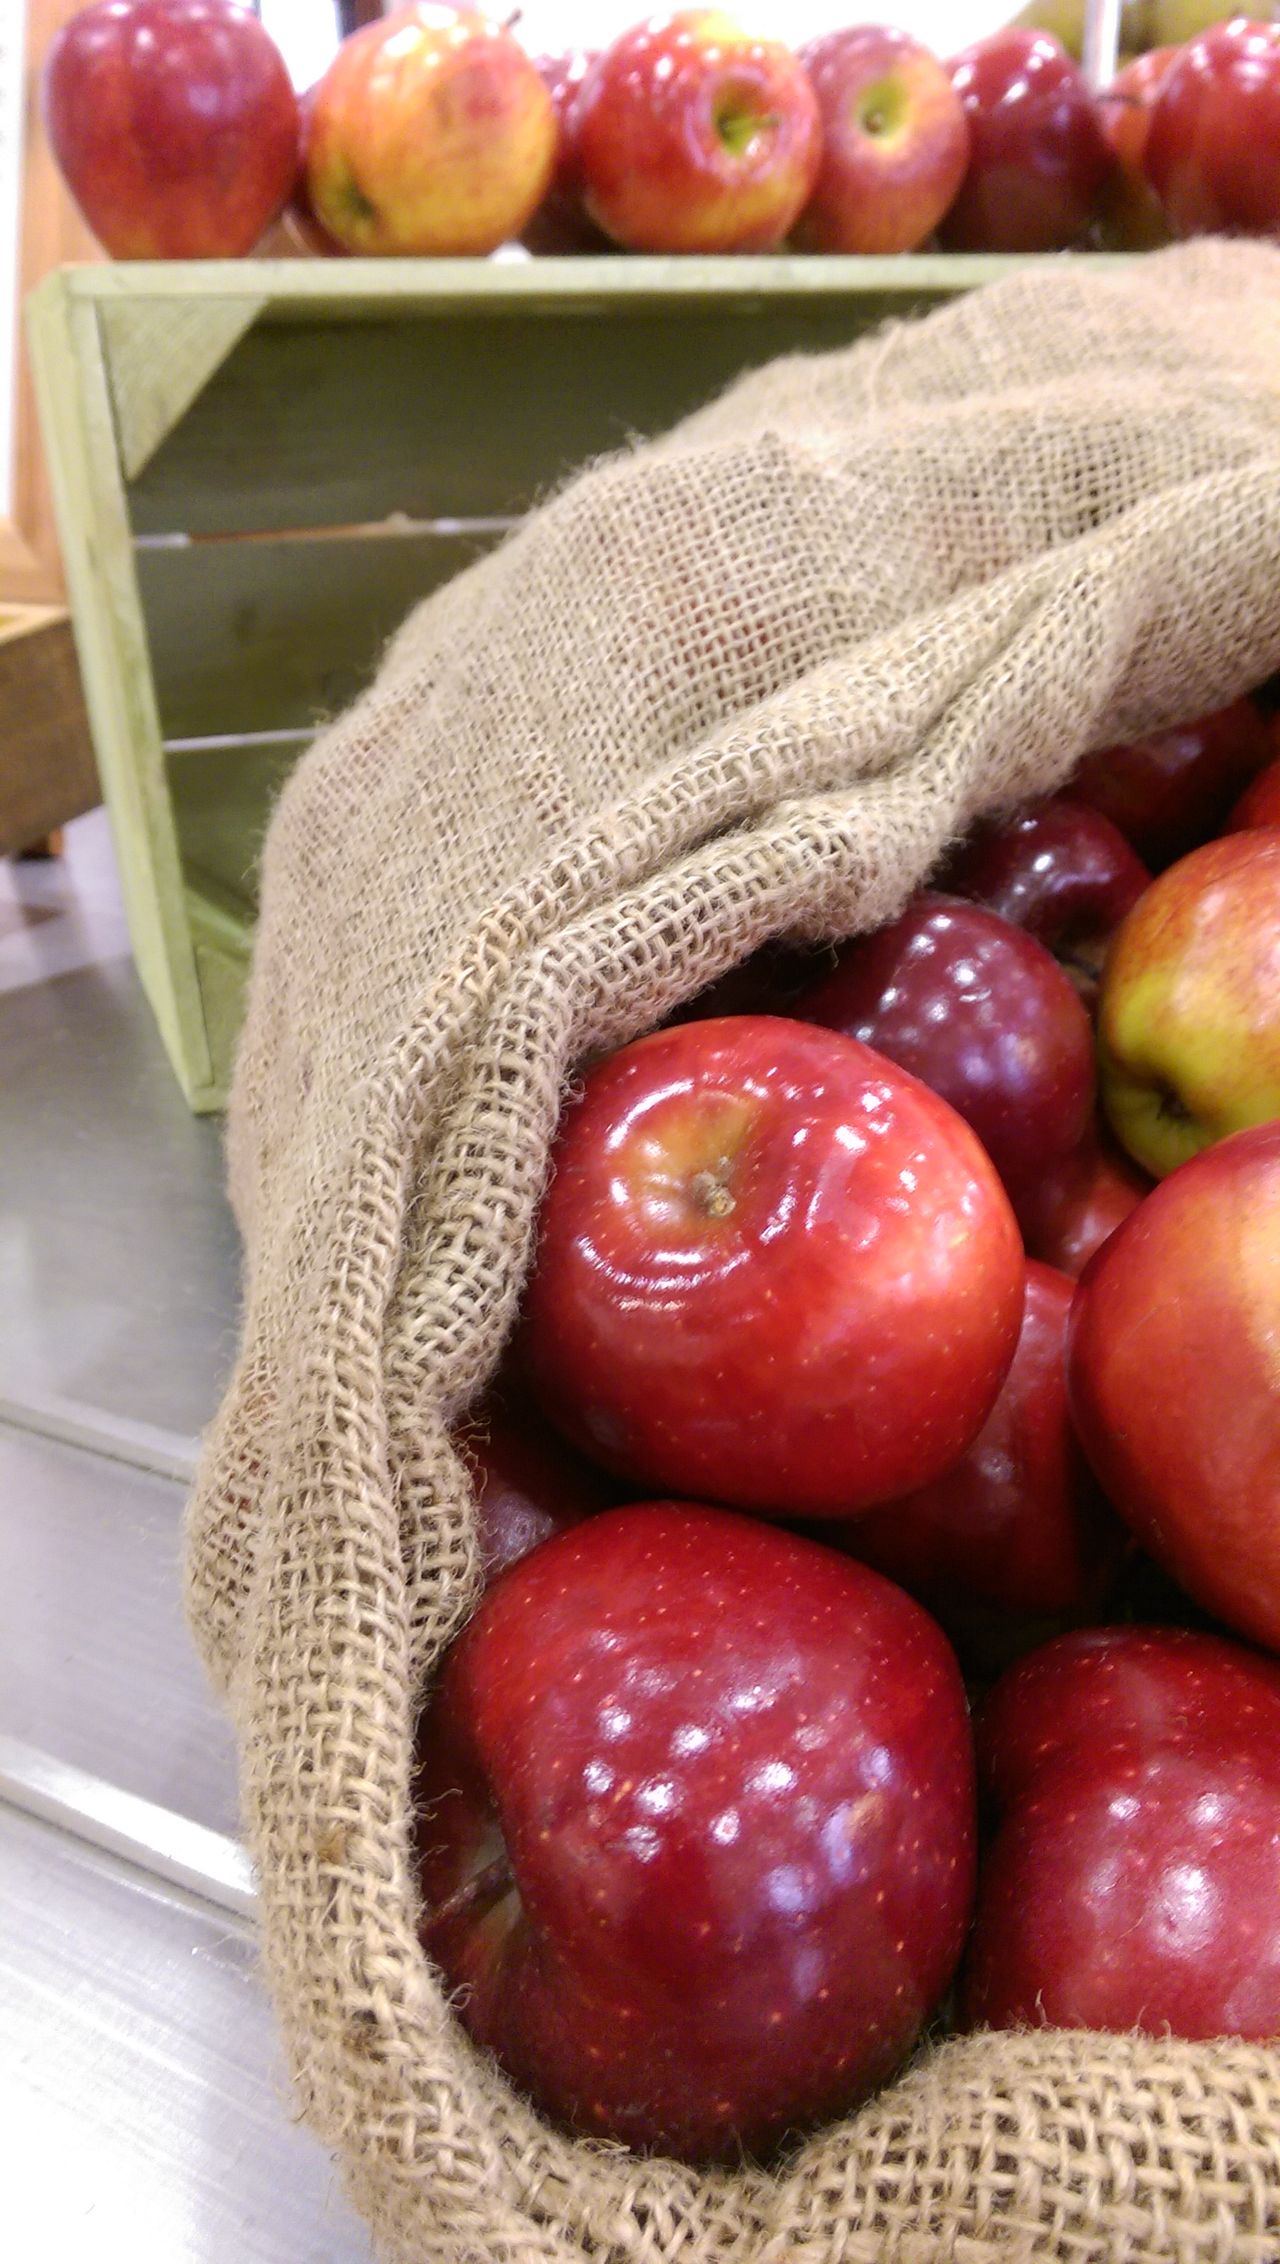 Apples Bag Of Red A Crate Of A Crate Of Red A Hessian Bag Of Red A Hessian Sack Of A Hessian Sack Of Red A Red Apples Sack Of Red A